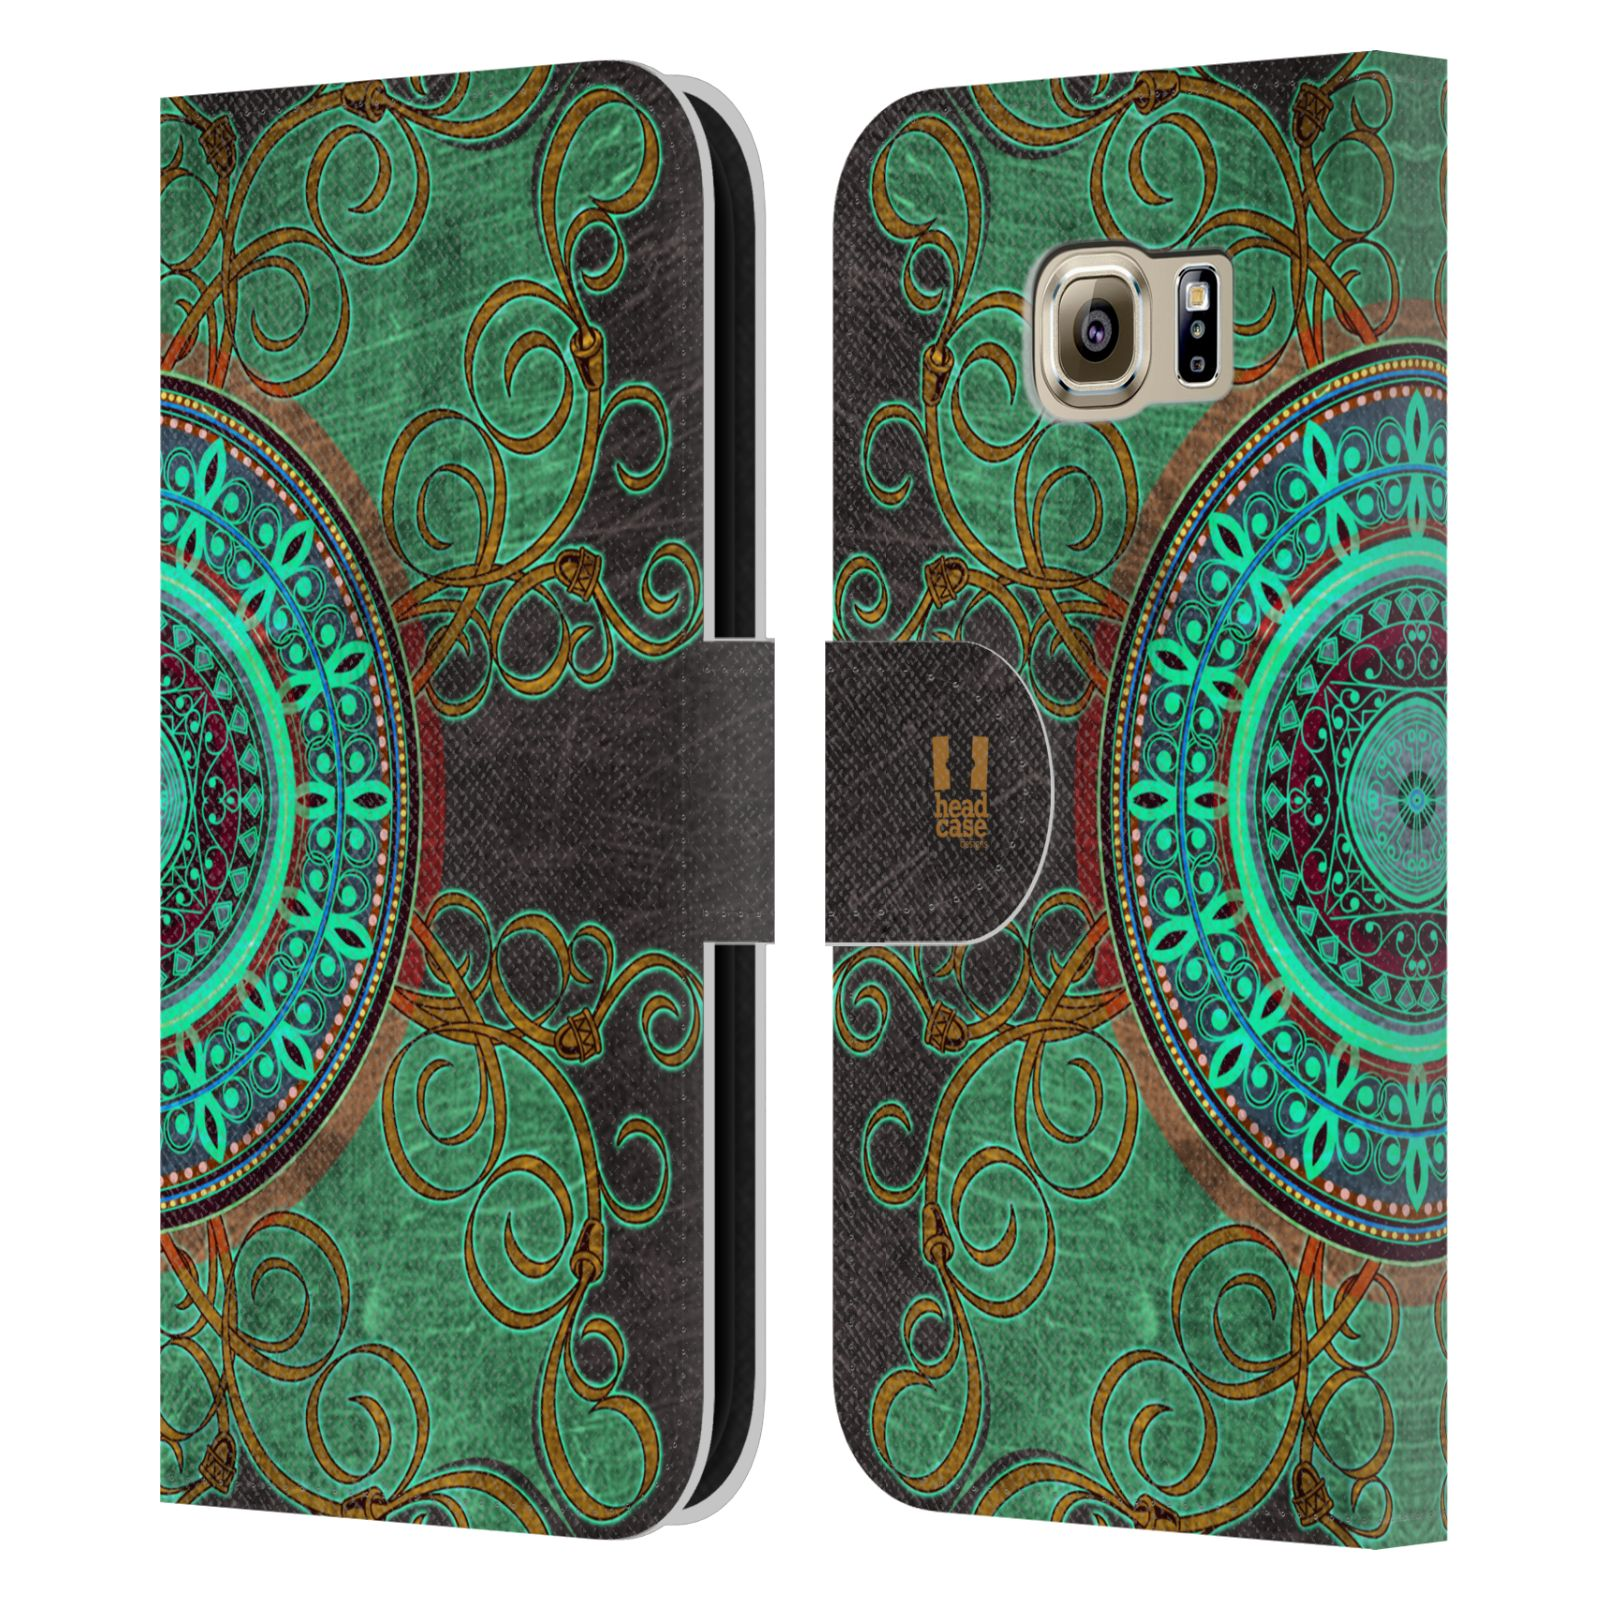 Leather Book Cover Pattern : Head case arabesque pattern leather book wallet cover